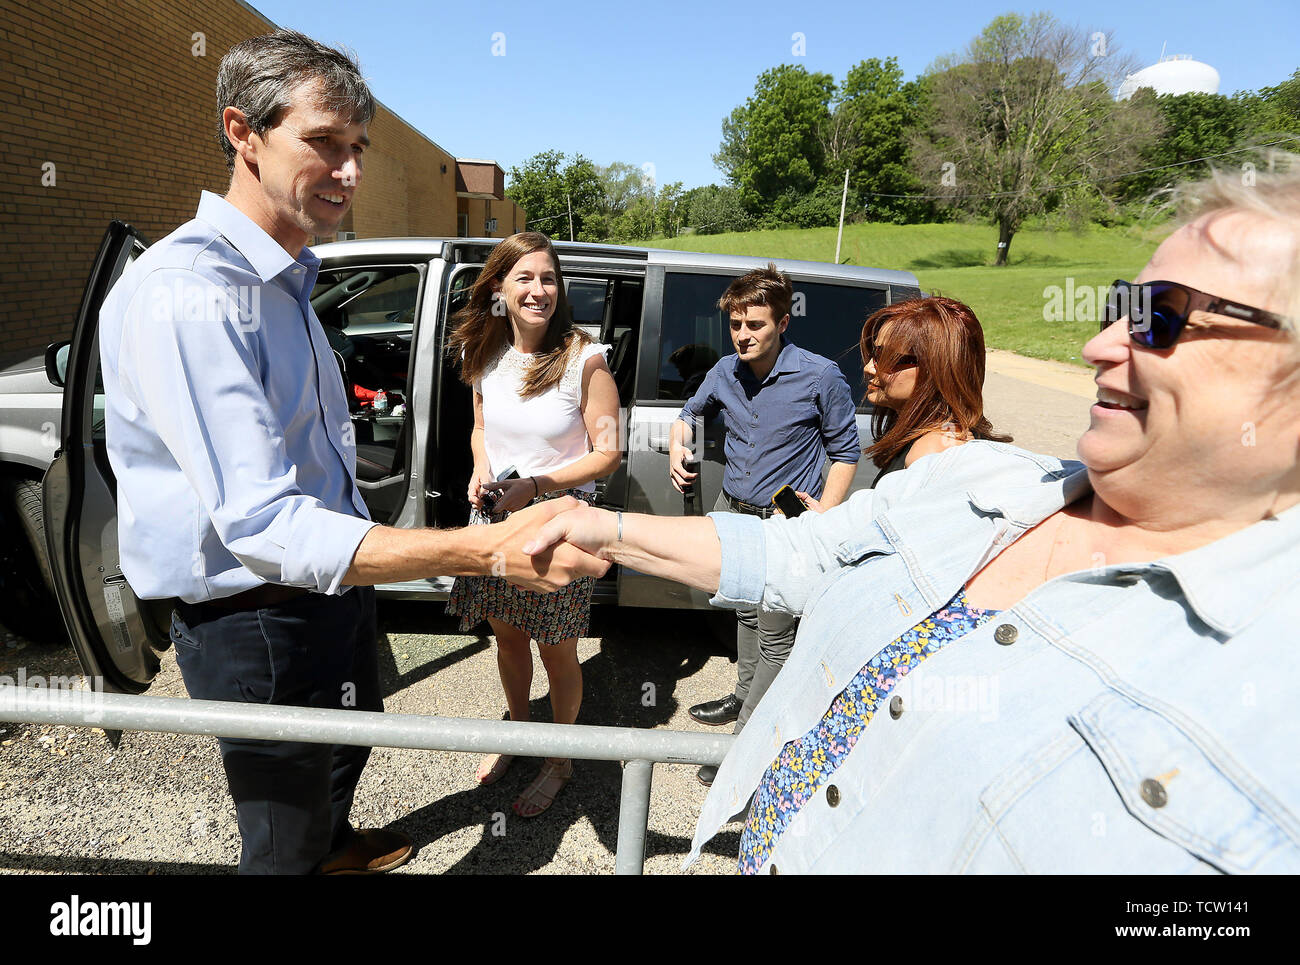 Clinton, Iowa, USA. 10th June, 2019. Democratic presidential candidate and former Texas Congressman Beto O'Rourke, left shakes hands with Sara Rovine of Davenport following a town hall meeting at the Gateway Area Community Center on Bluff Boulevard in Clinton, Iowa Monday, June 6, 2019. Credit: Kevin E. Schmidt/Quad-City Times/ZUMA Wire/Alamy Live News - Stock Image